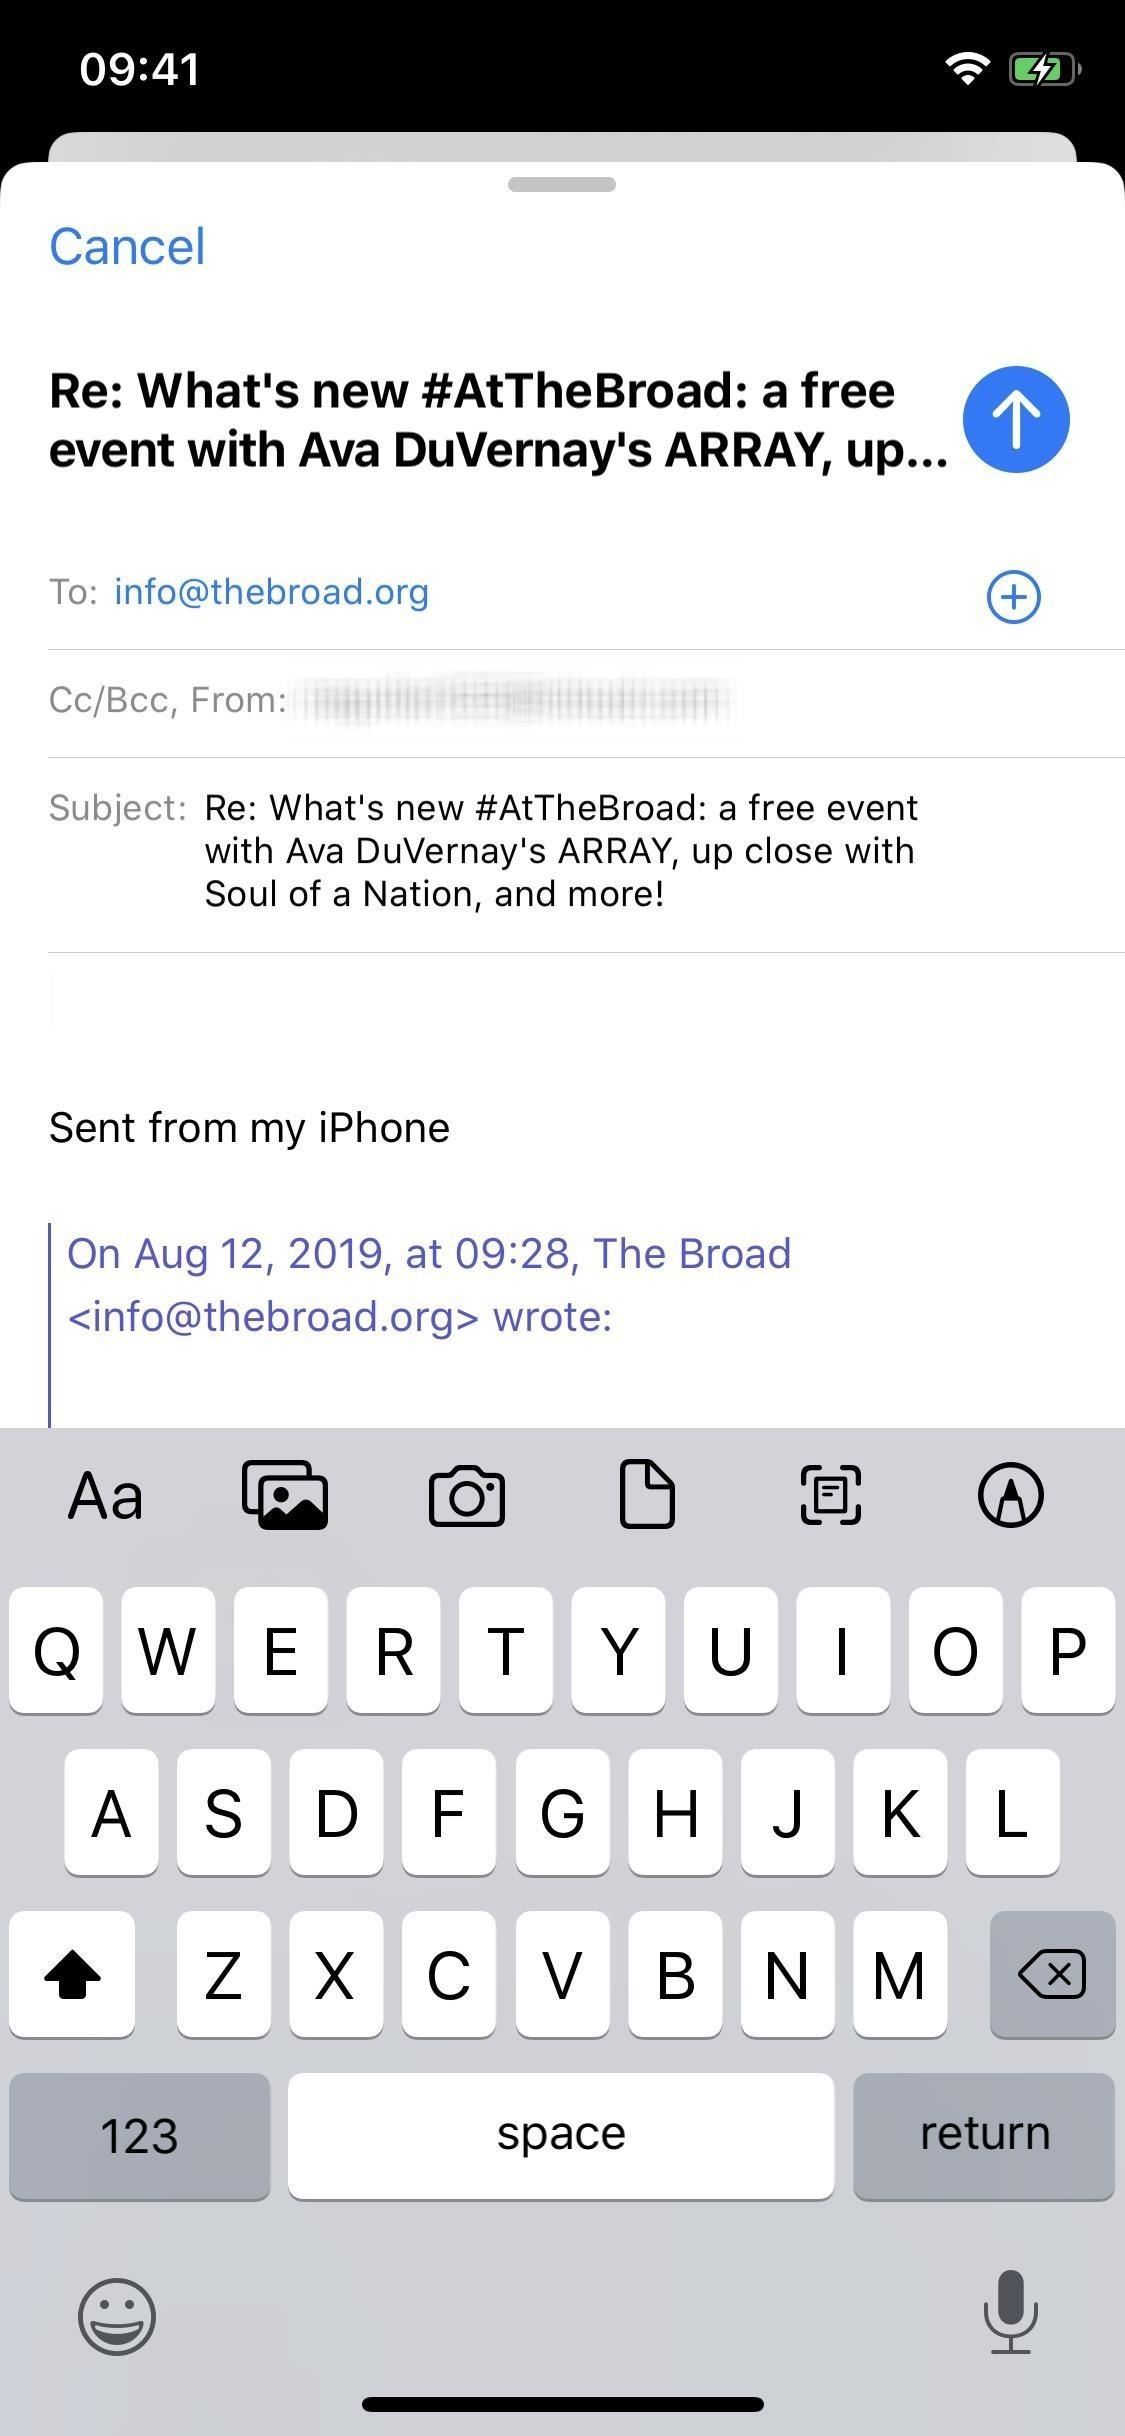 22 New features in the iOS 13 mail app that help you master the art of e-mail